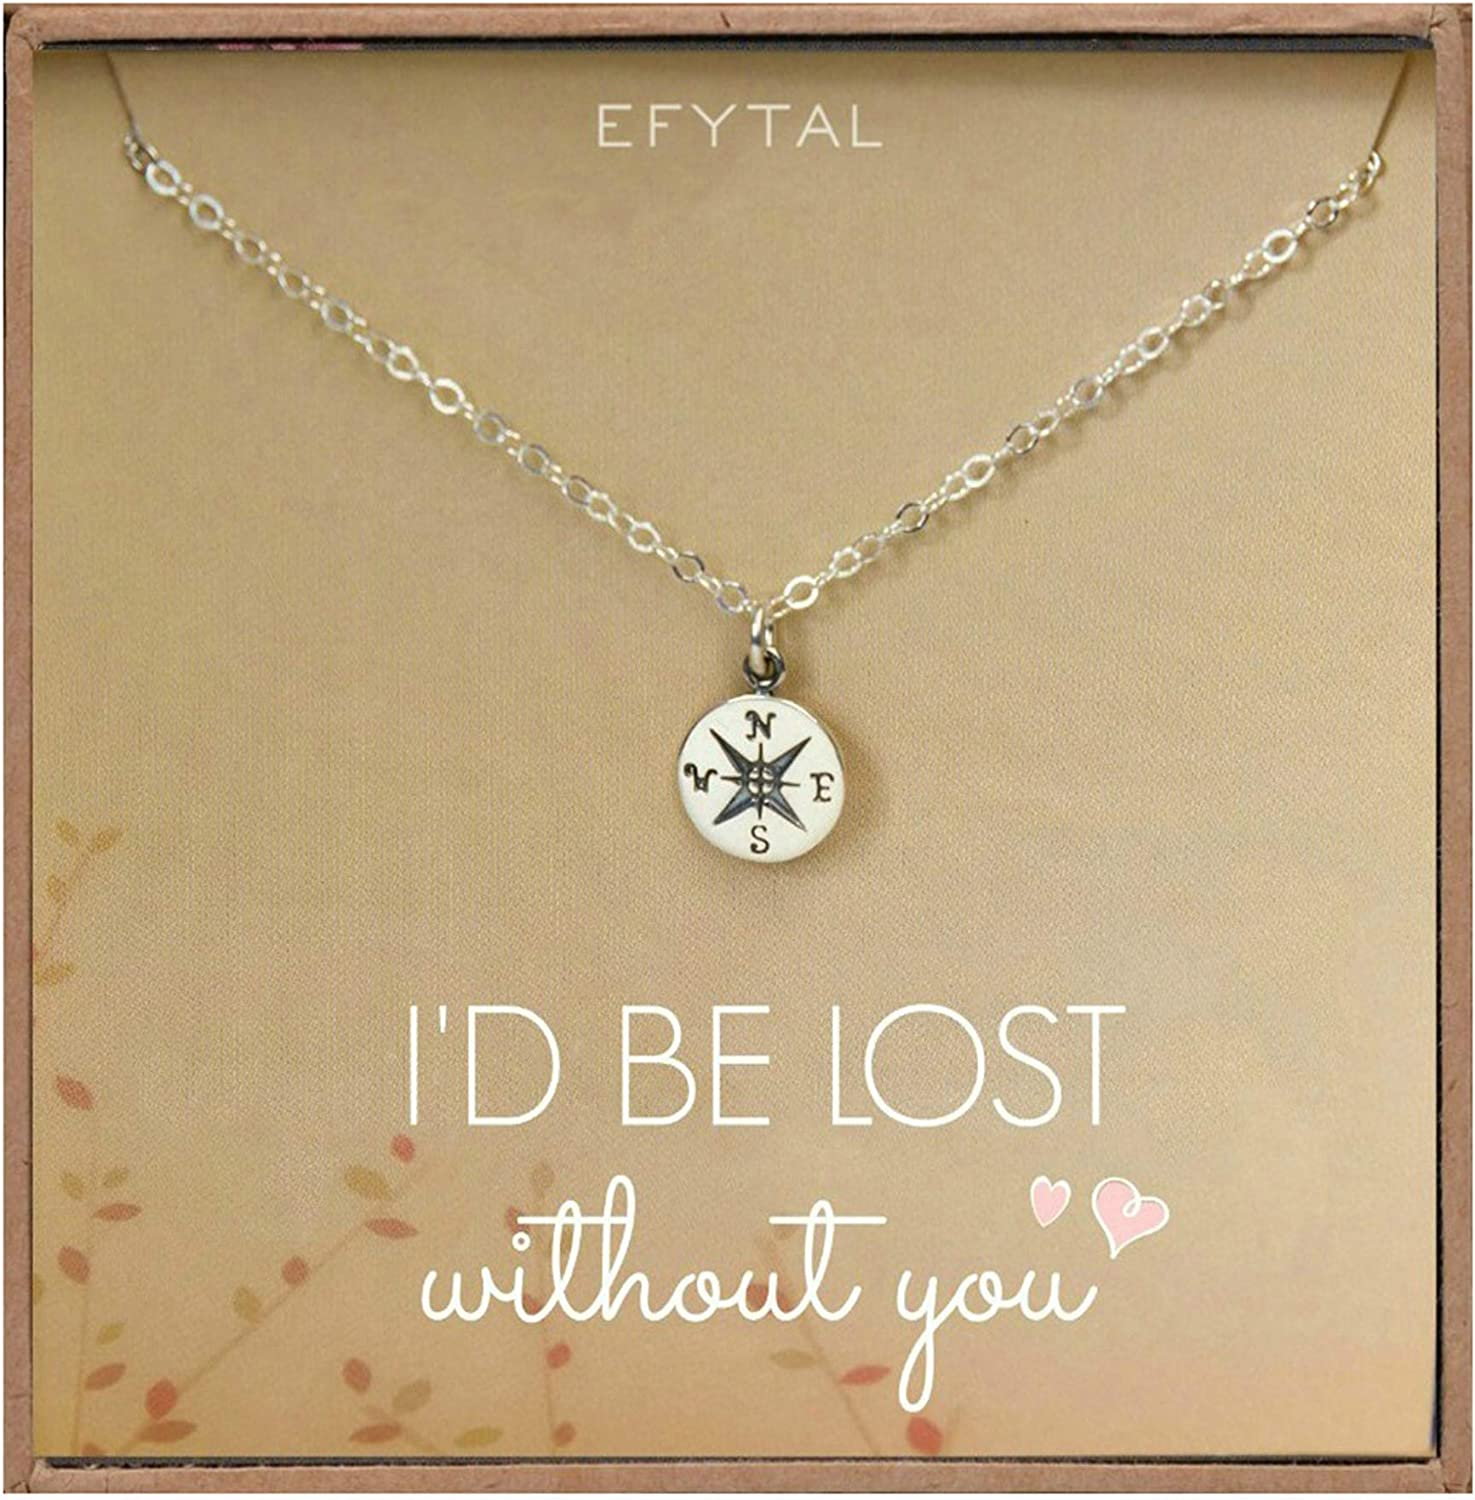 Amazon Com Necklace Gift For Girlfriend Wife Sterling Silver Cute I Love You Compass Heart Jewelry For Her I D Be Lost Without You Valentines Day Romantic Anniversary Birthday Gift Ideas Clothing